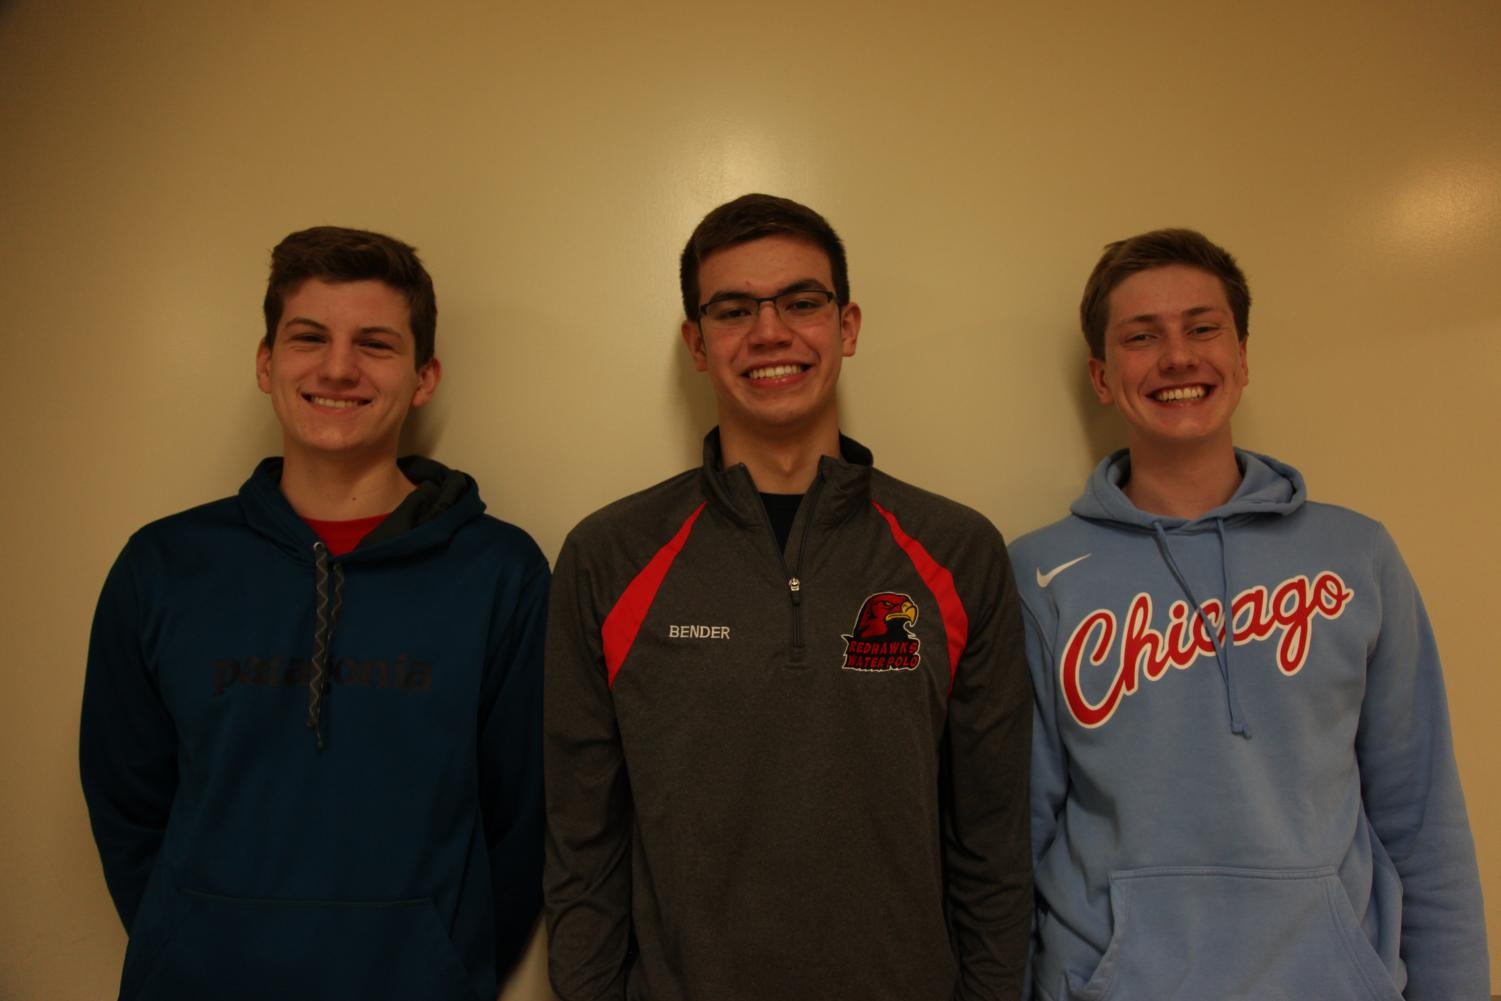 Puzzles Podcast features junior Henry Mills, senior Bender Russo and junior Mark Laboe, with new episodes available on Spotify, Apple Music and SoundCloud.